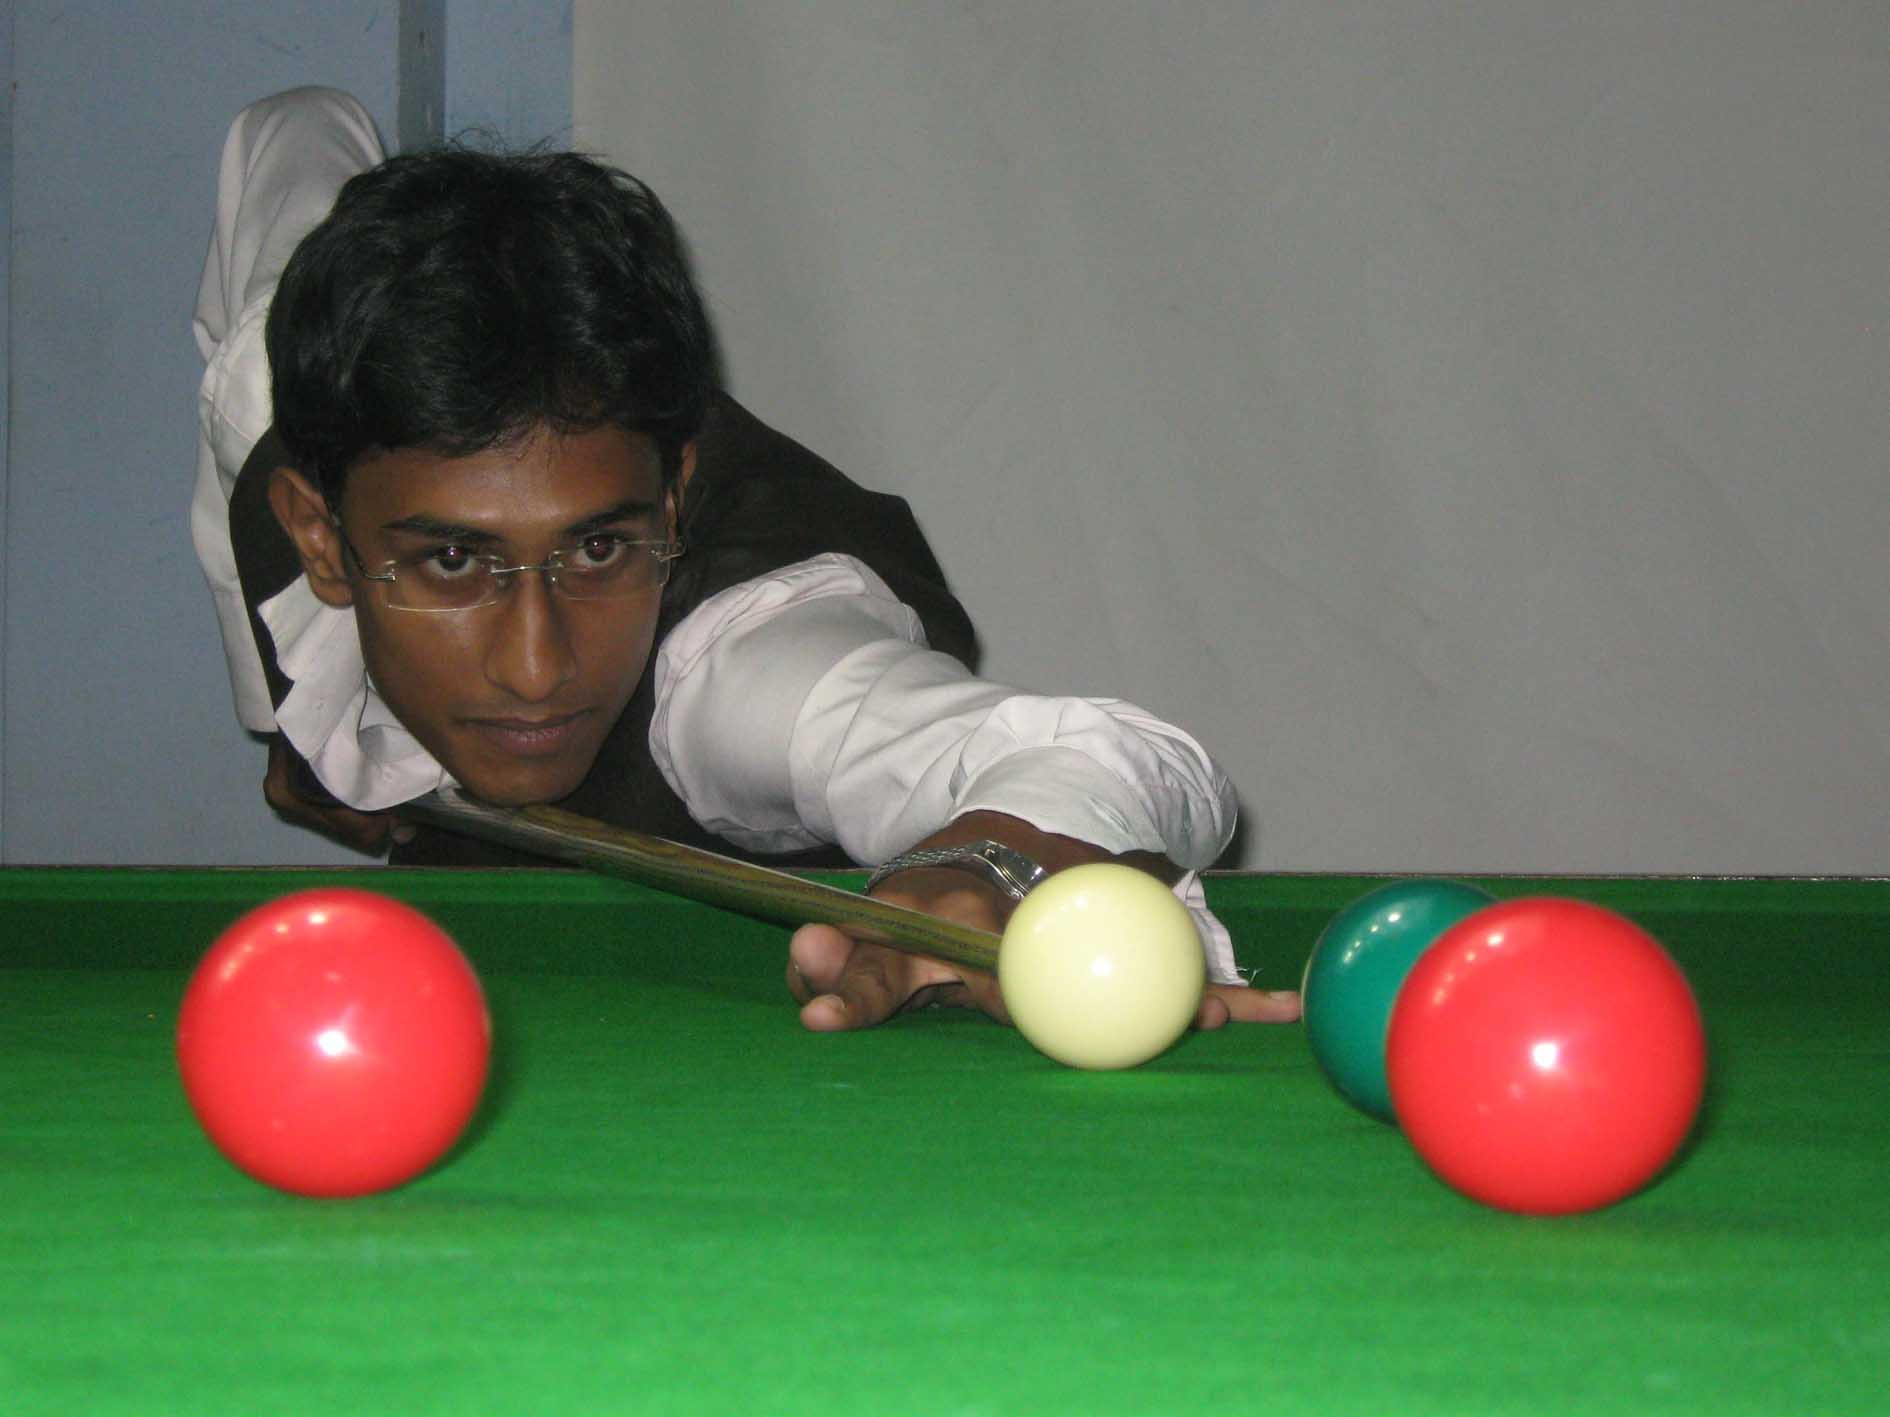 <b>Saurya Pattnaik </b>in action at the 15th State Junior Snooker Championship in Bhubaneswar on <b>July 29, 2009.